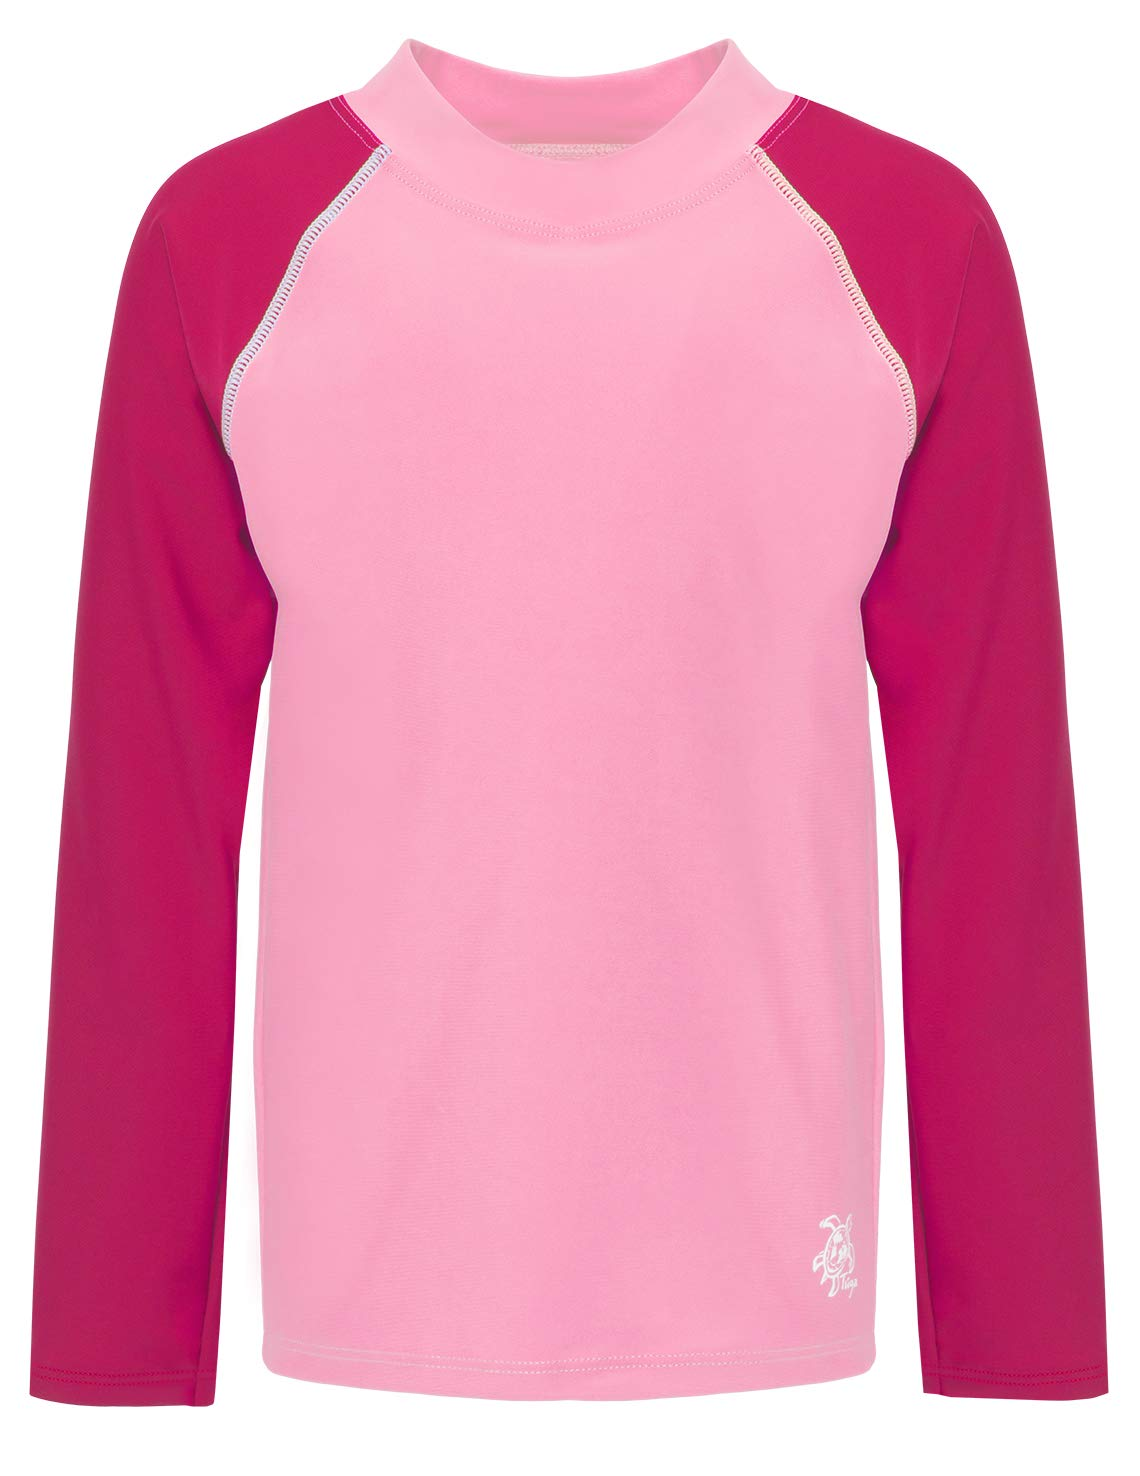 Tuga Basics Girls L/S Rash Guard (UPF 50+), Dalia/Cranberry, 2/3 yrs (19-1000-2/3) by Tuga Sunwear